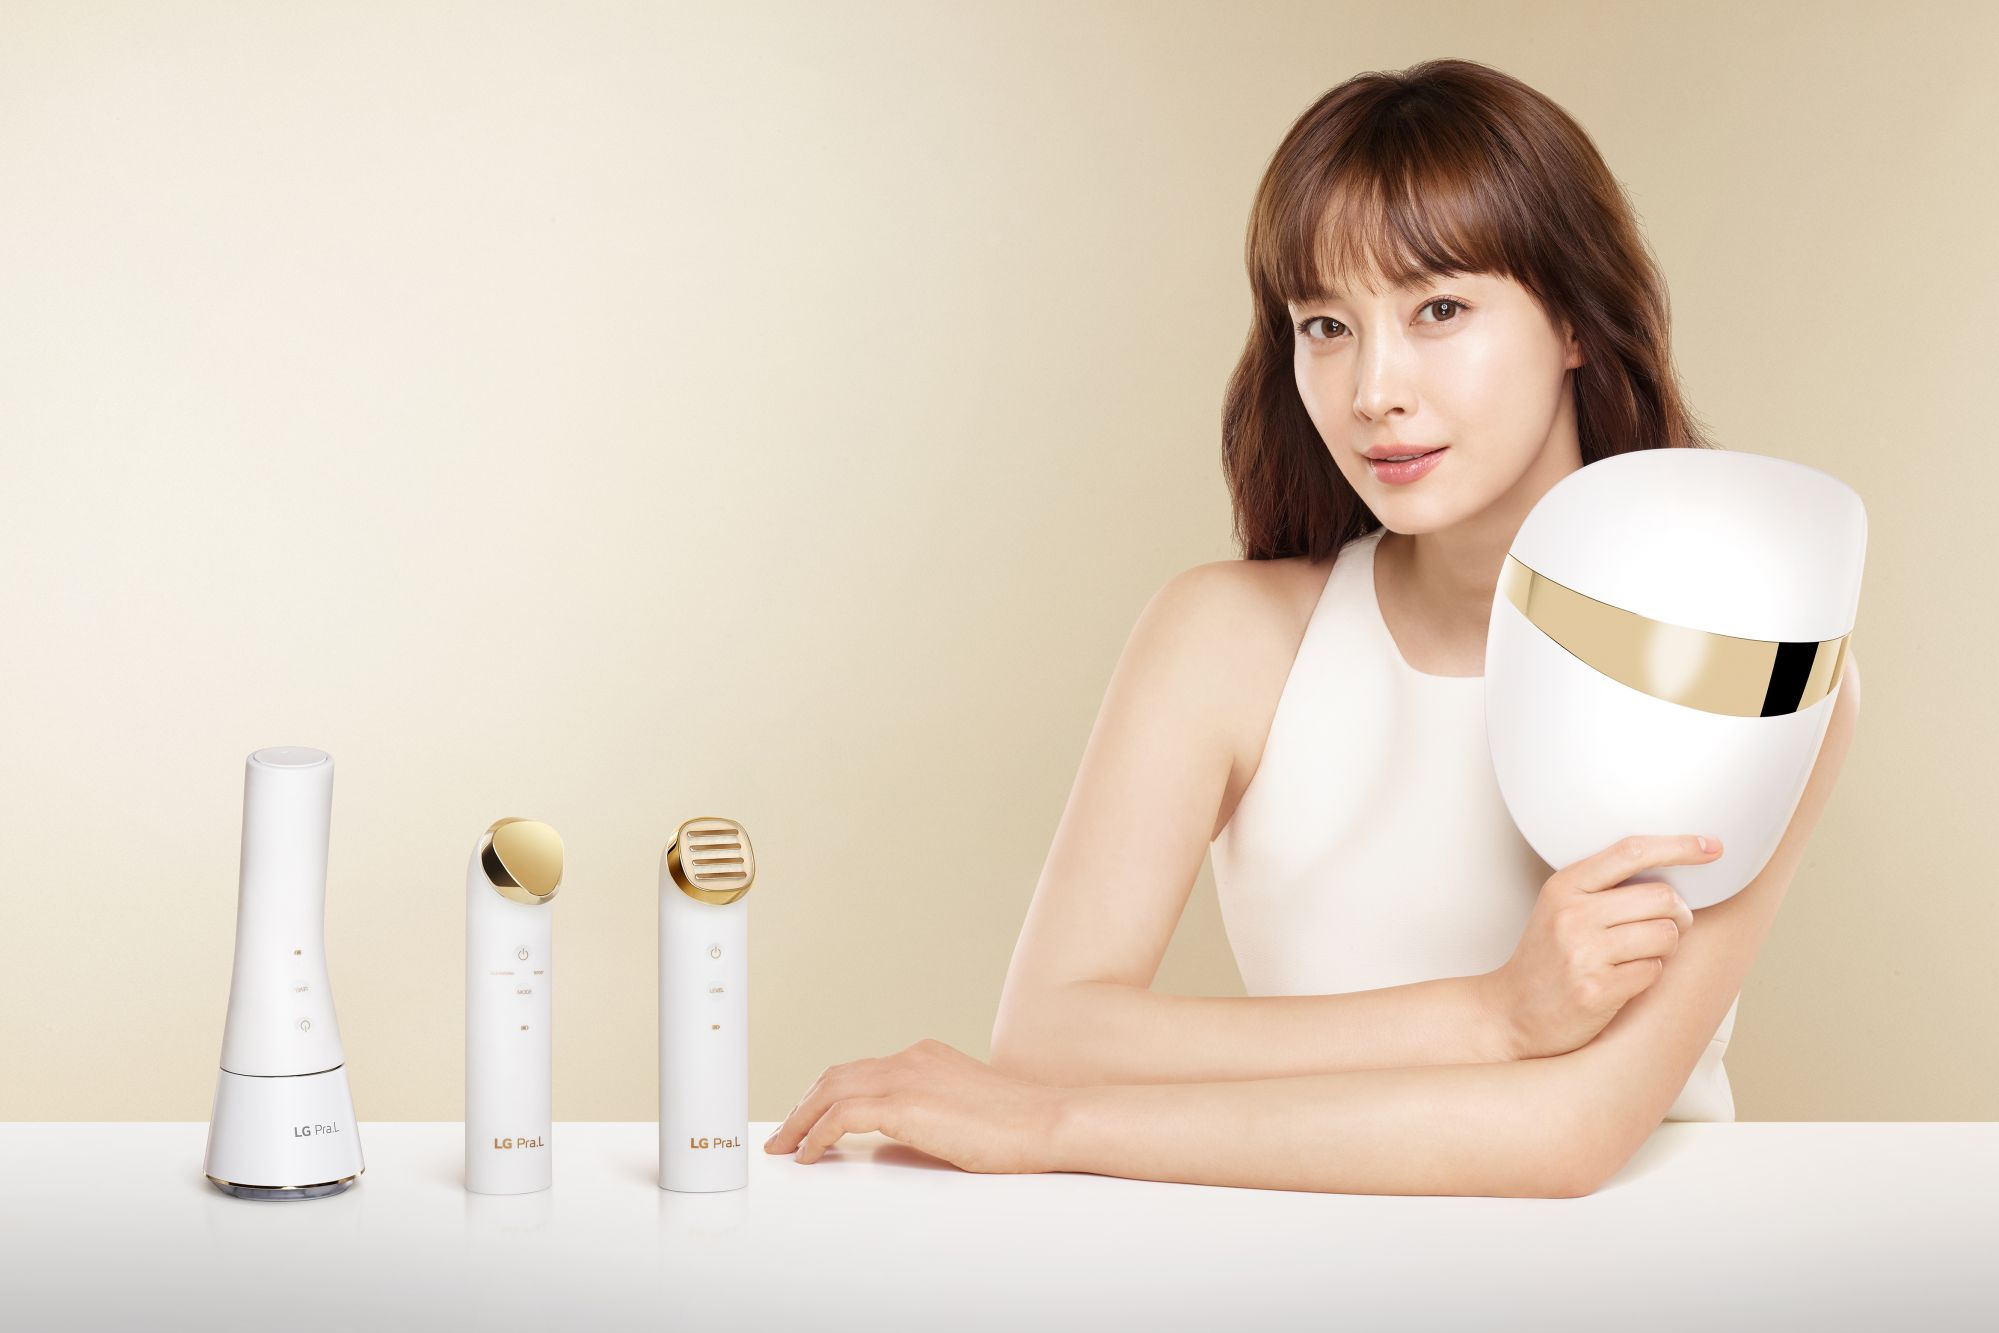 These Beauty Gadgets By LG Pra.L Will Give You A Spa Experience Without Leaving Home